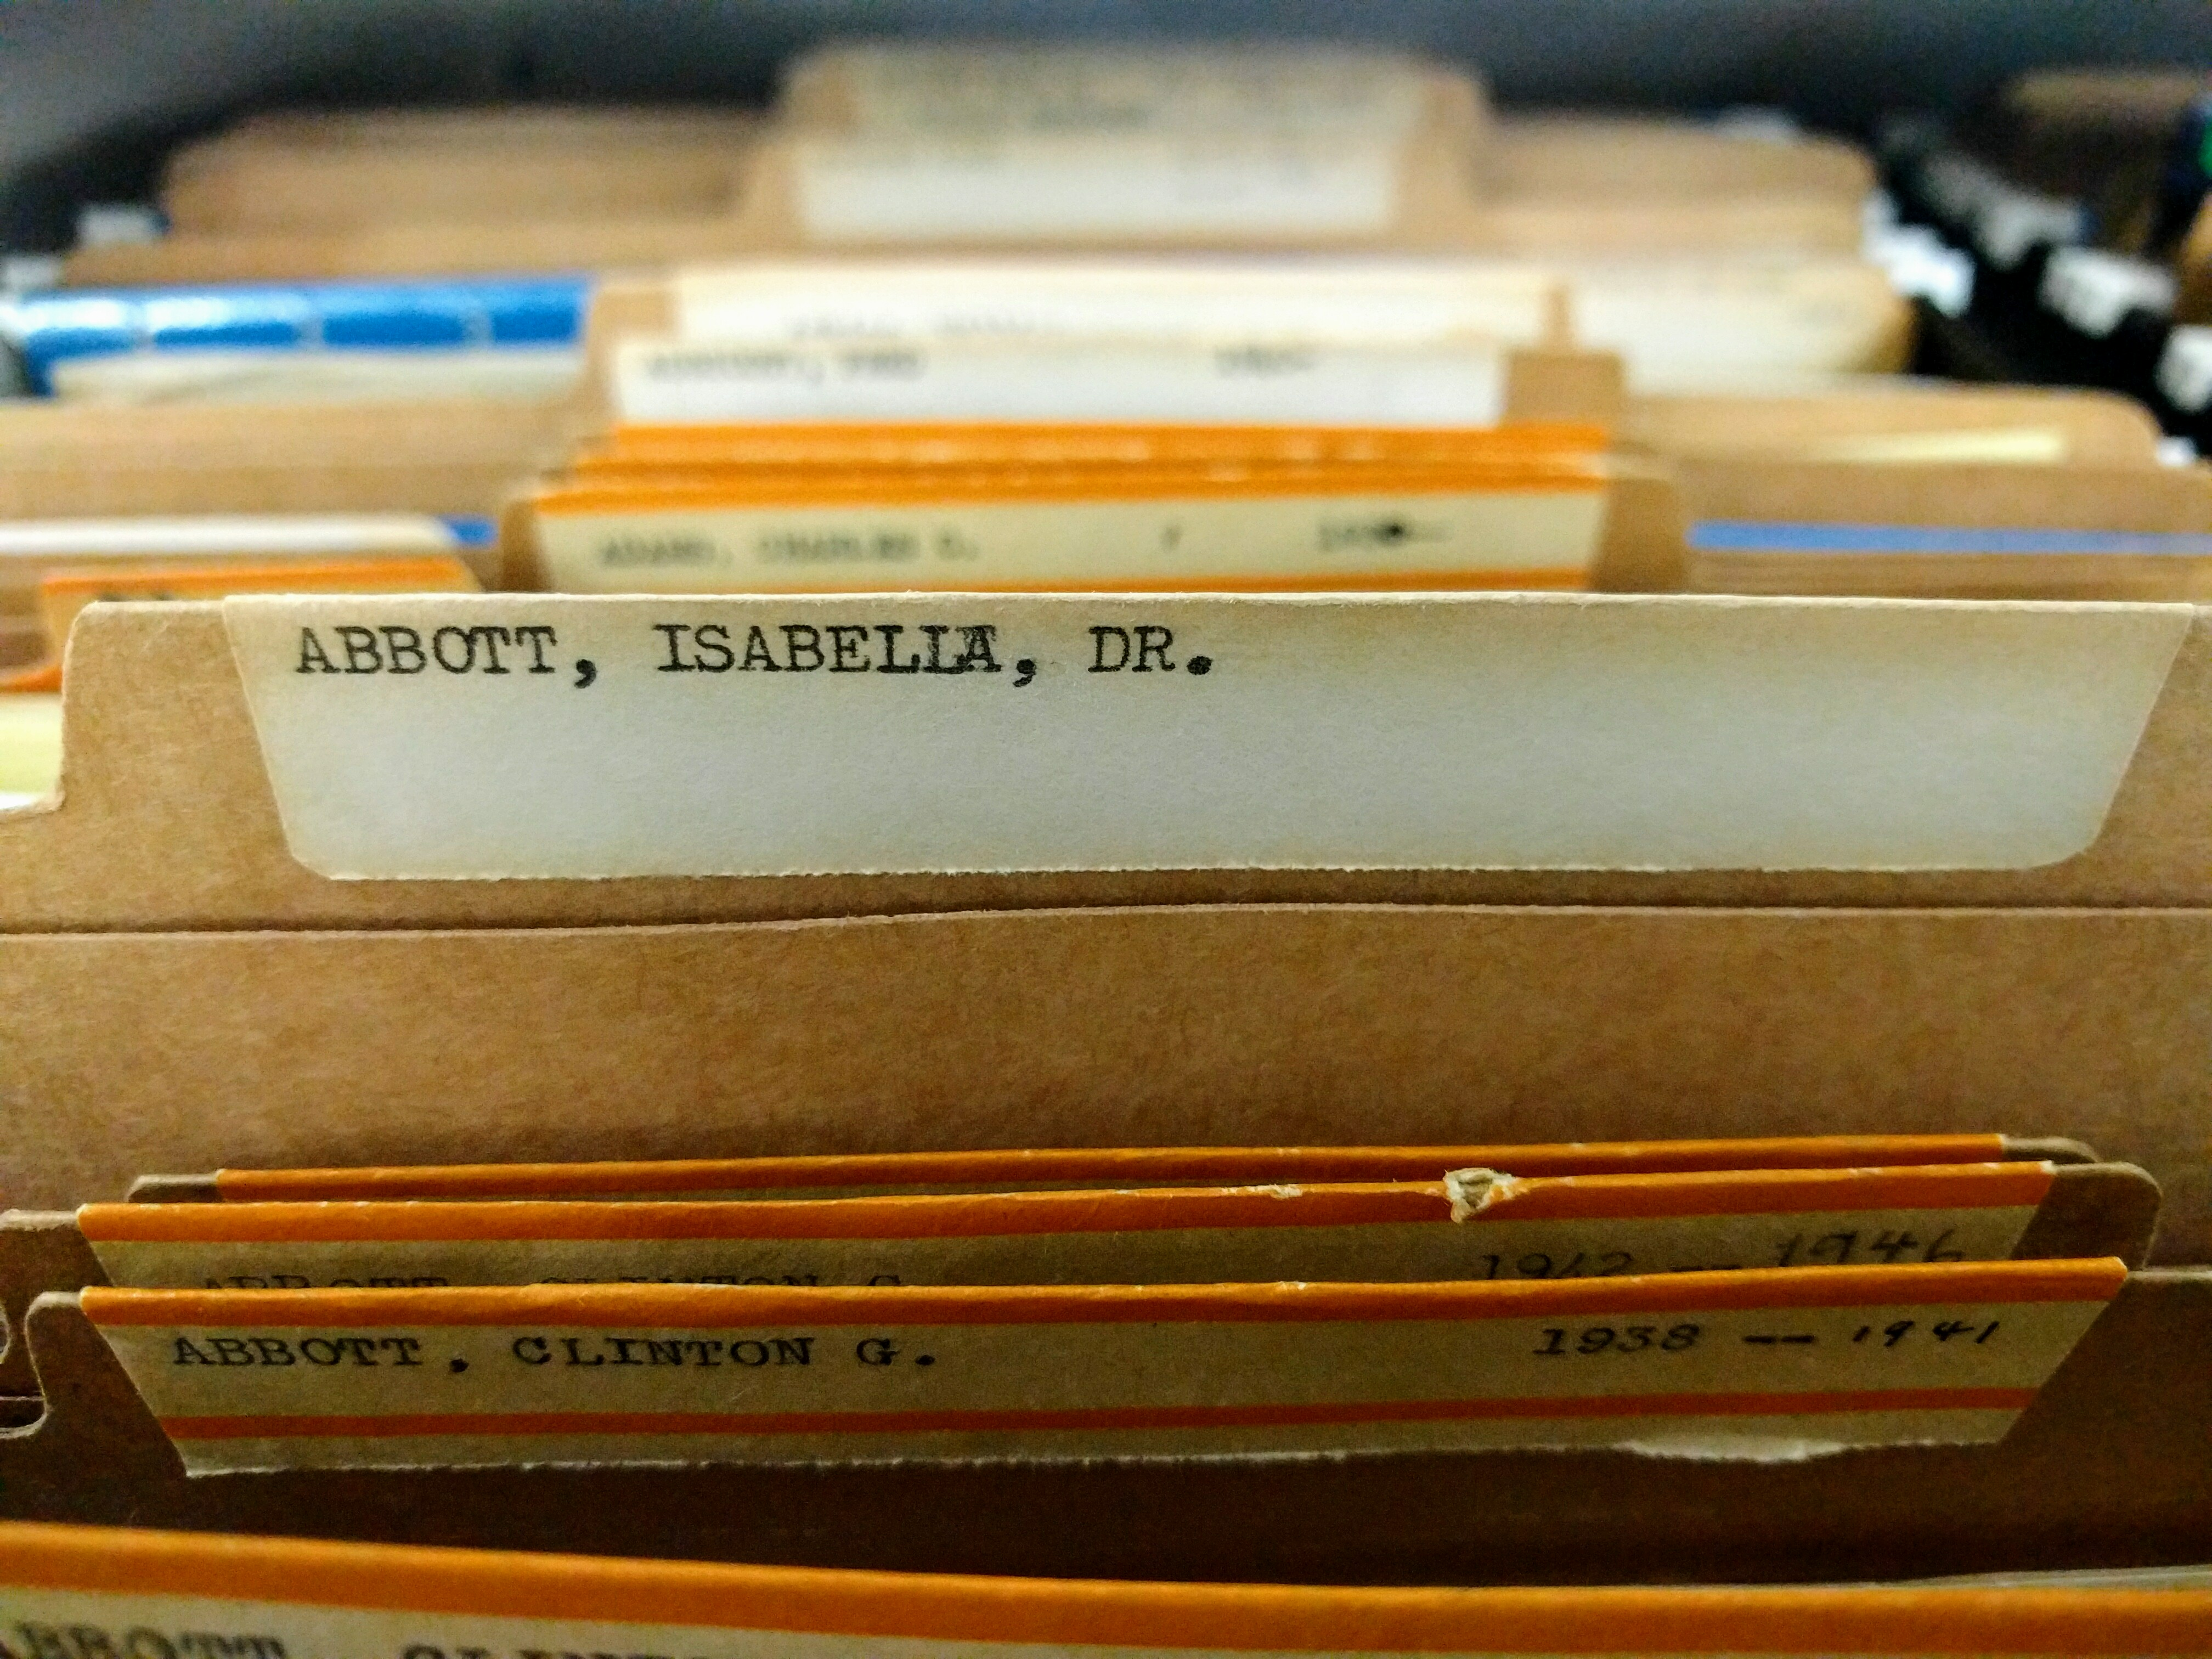 Dr. Isabella Abbott's correspondence file in the archives.